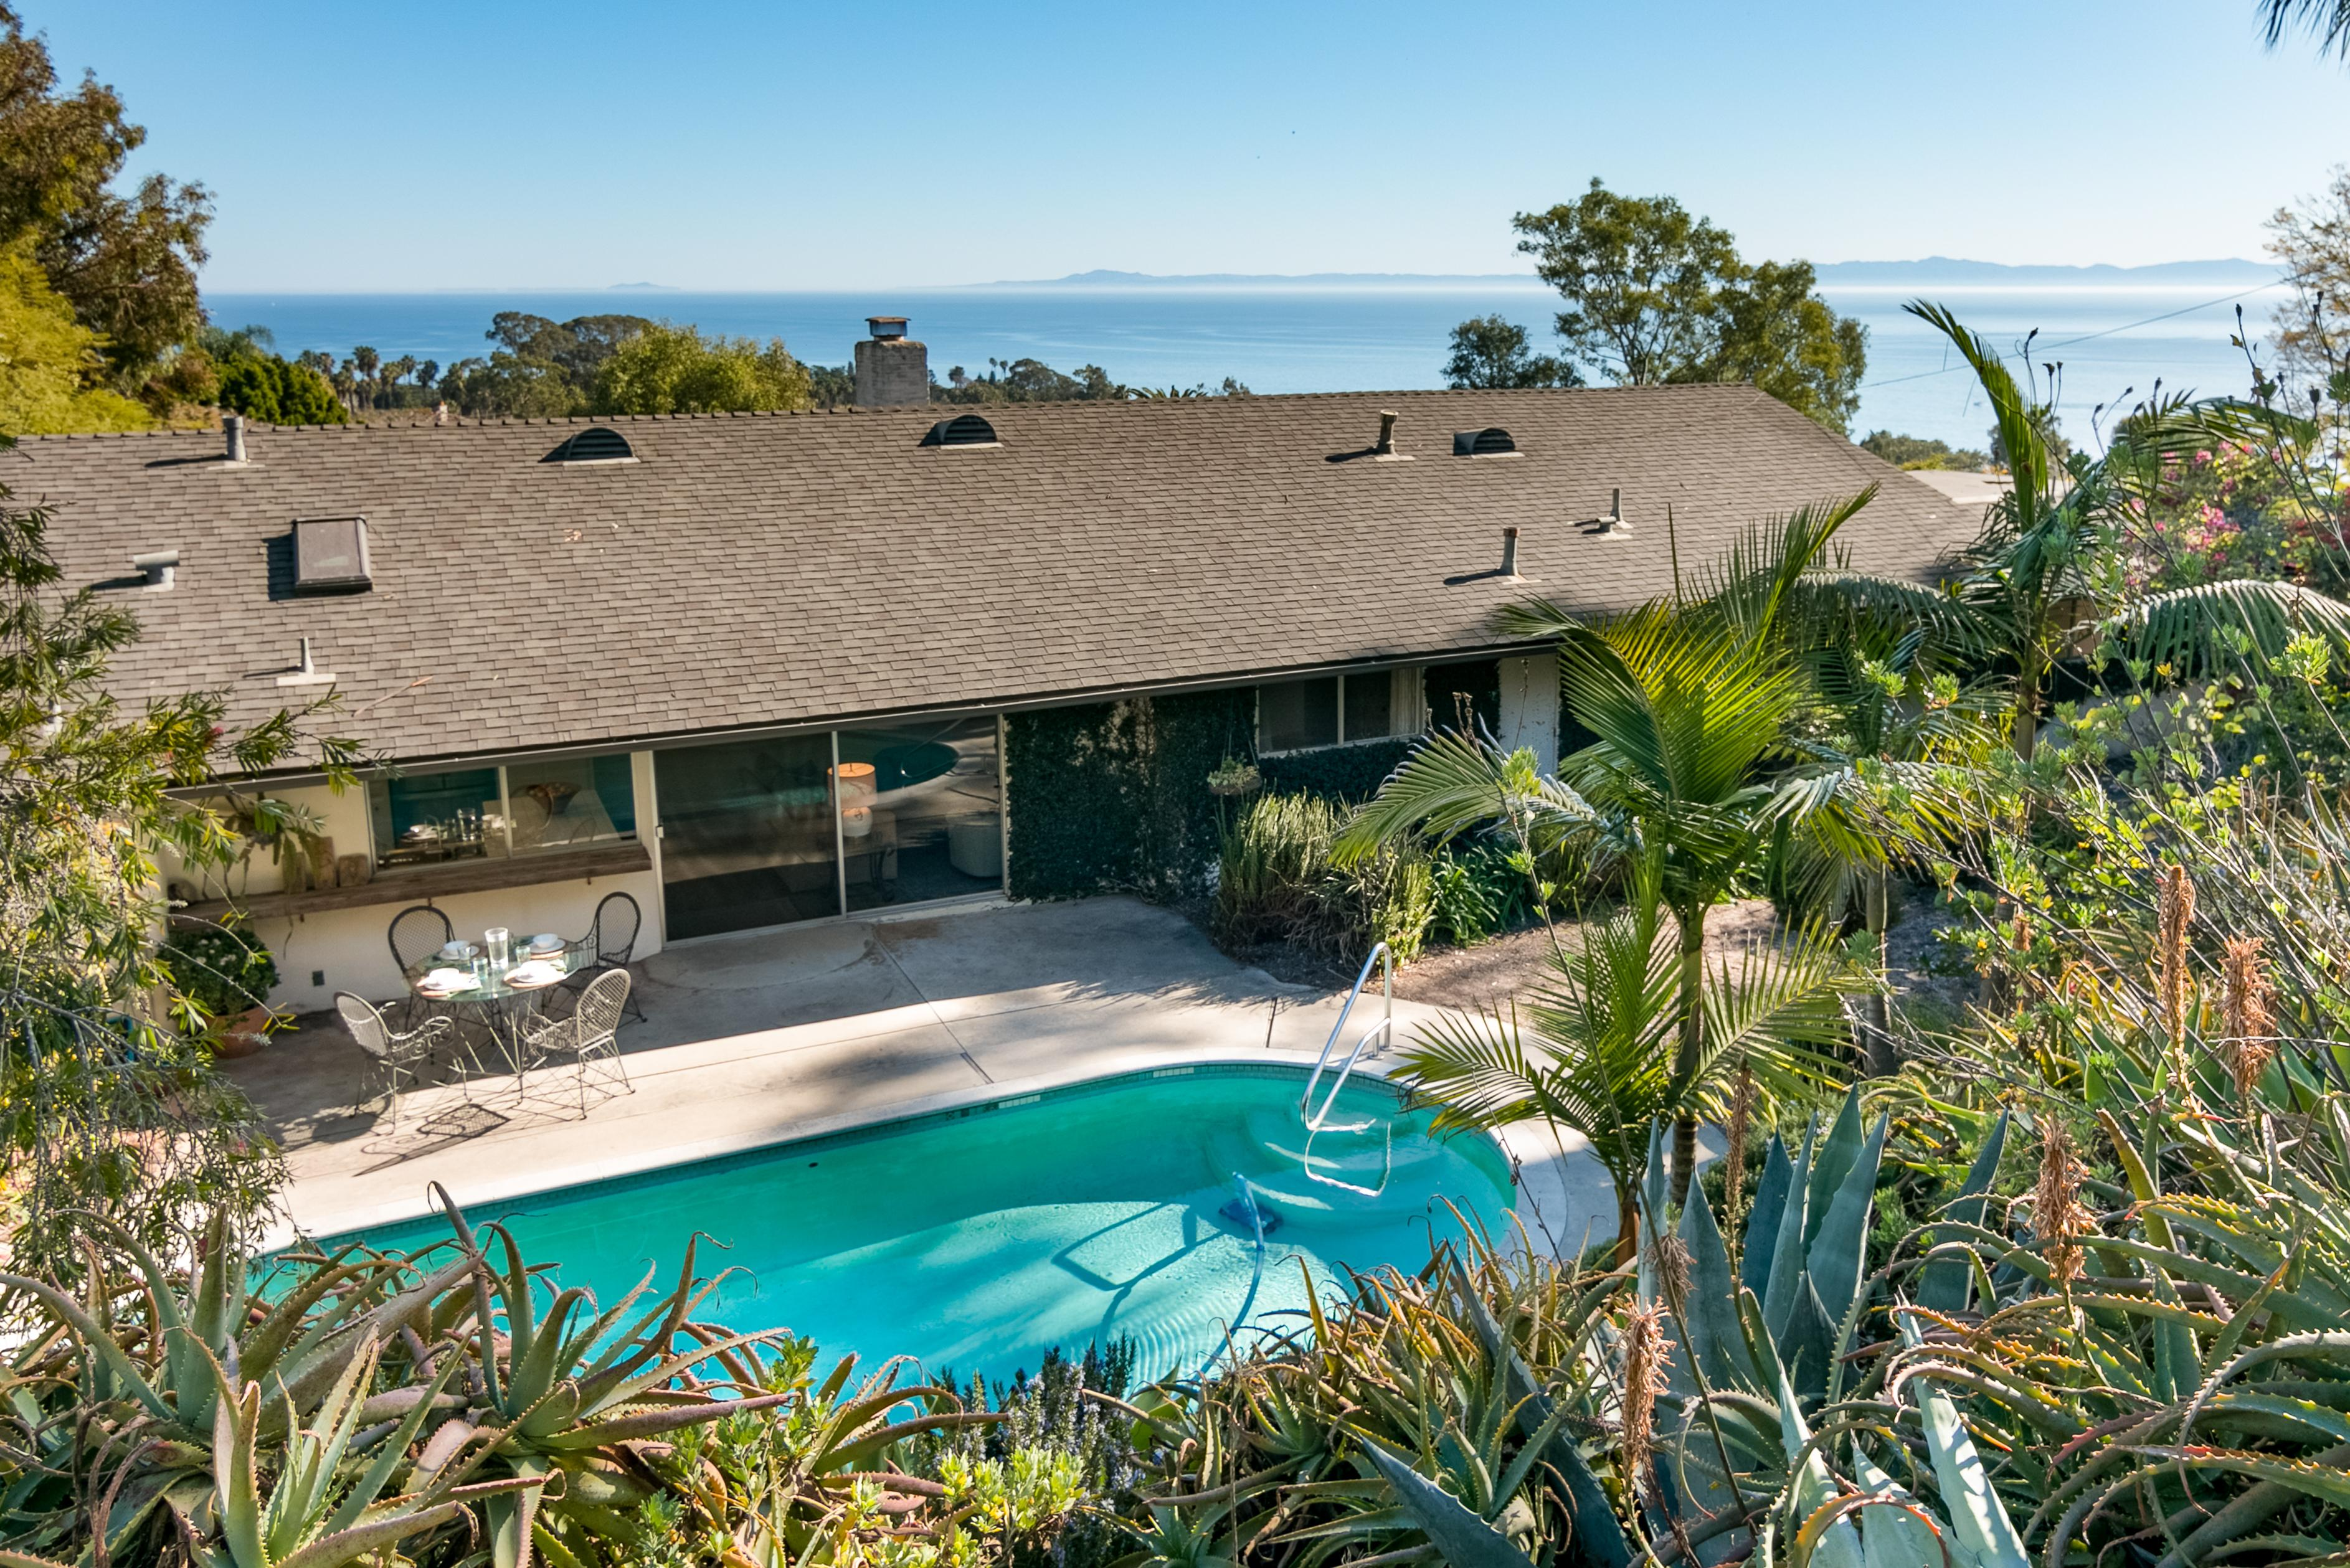 A prime location in the exclusive Hope Ranch community, this property offers unparalleled ocean views.